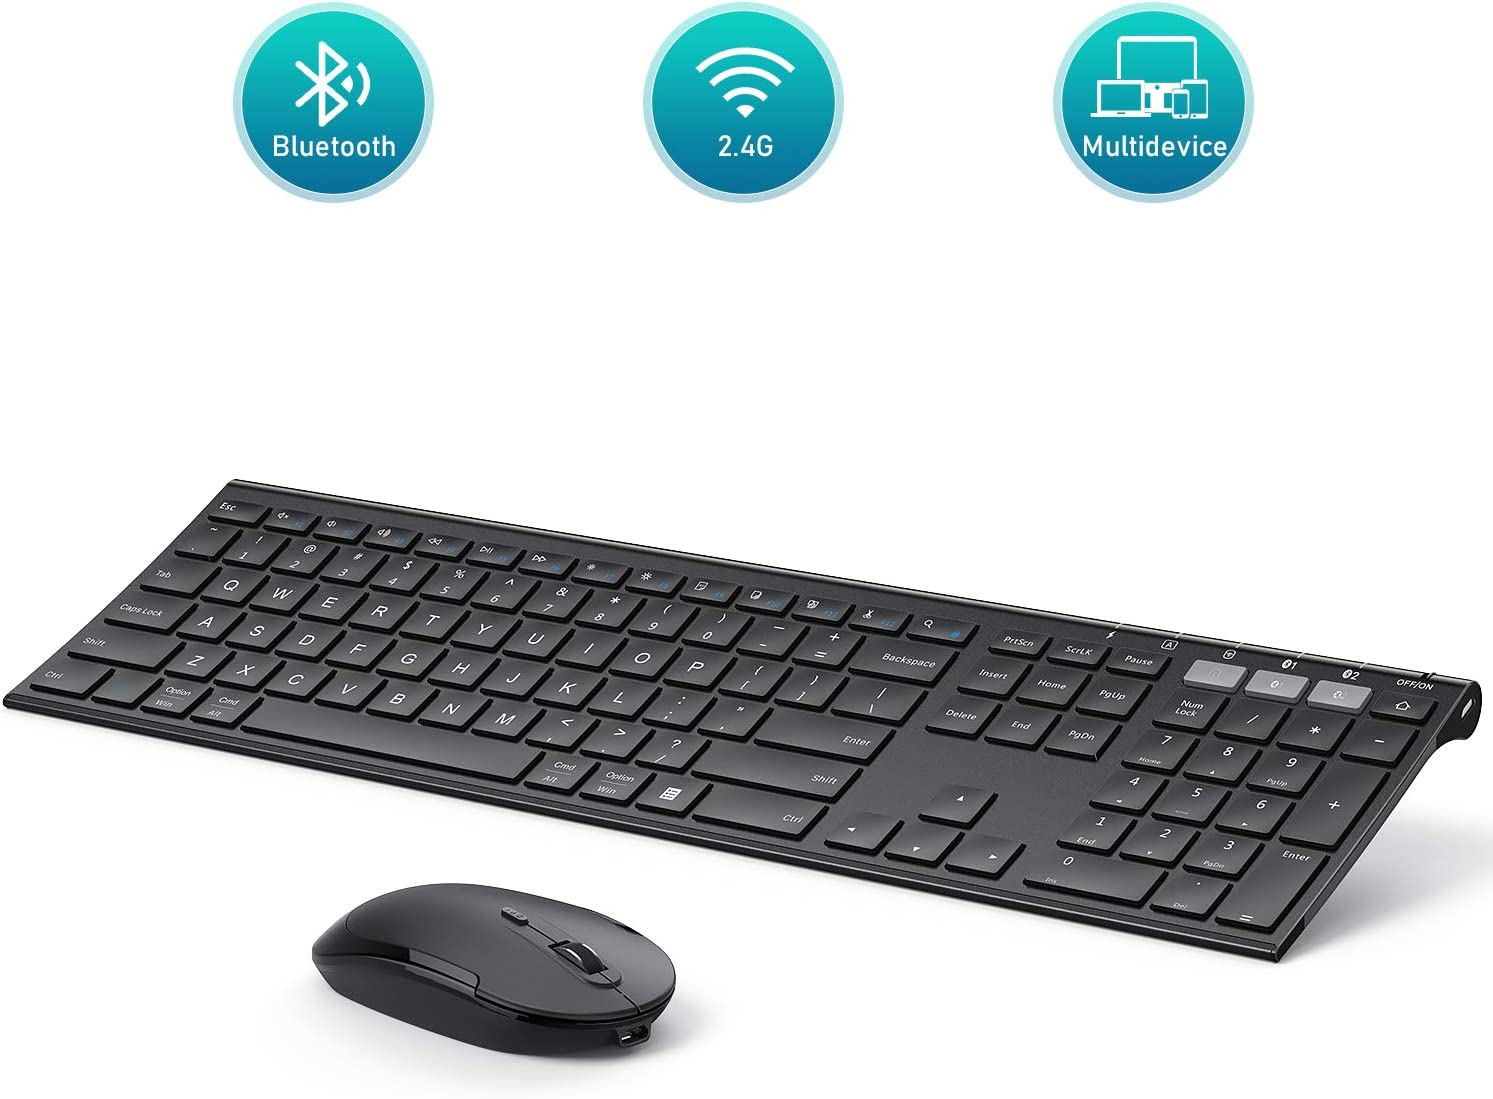 Multi-Device Bluetooth Keyboard and Mouse, Jelly Comb Rechargeable Dual-Mode(Bluetooth 4.0 + USB) Wireless Keyboard and Mouse Combo, for Windows 8 or 10+/ Android 5.0+/ Mac OS 10.10+/ iOS 10.13.4 +